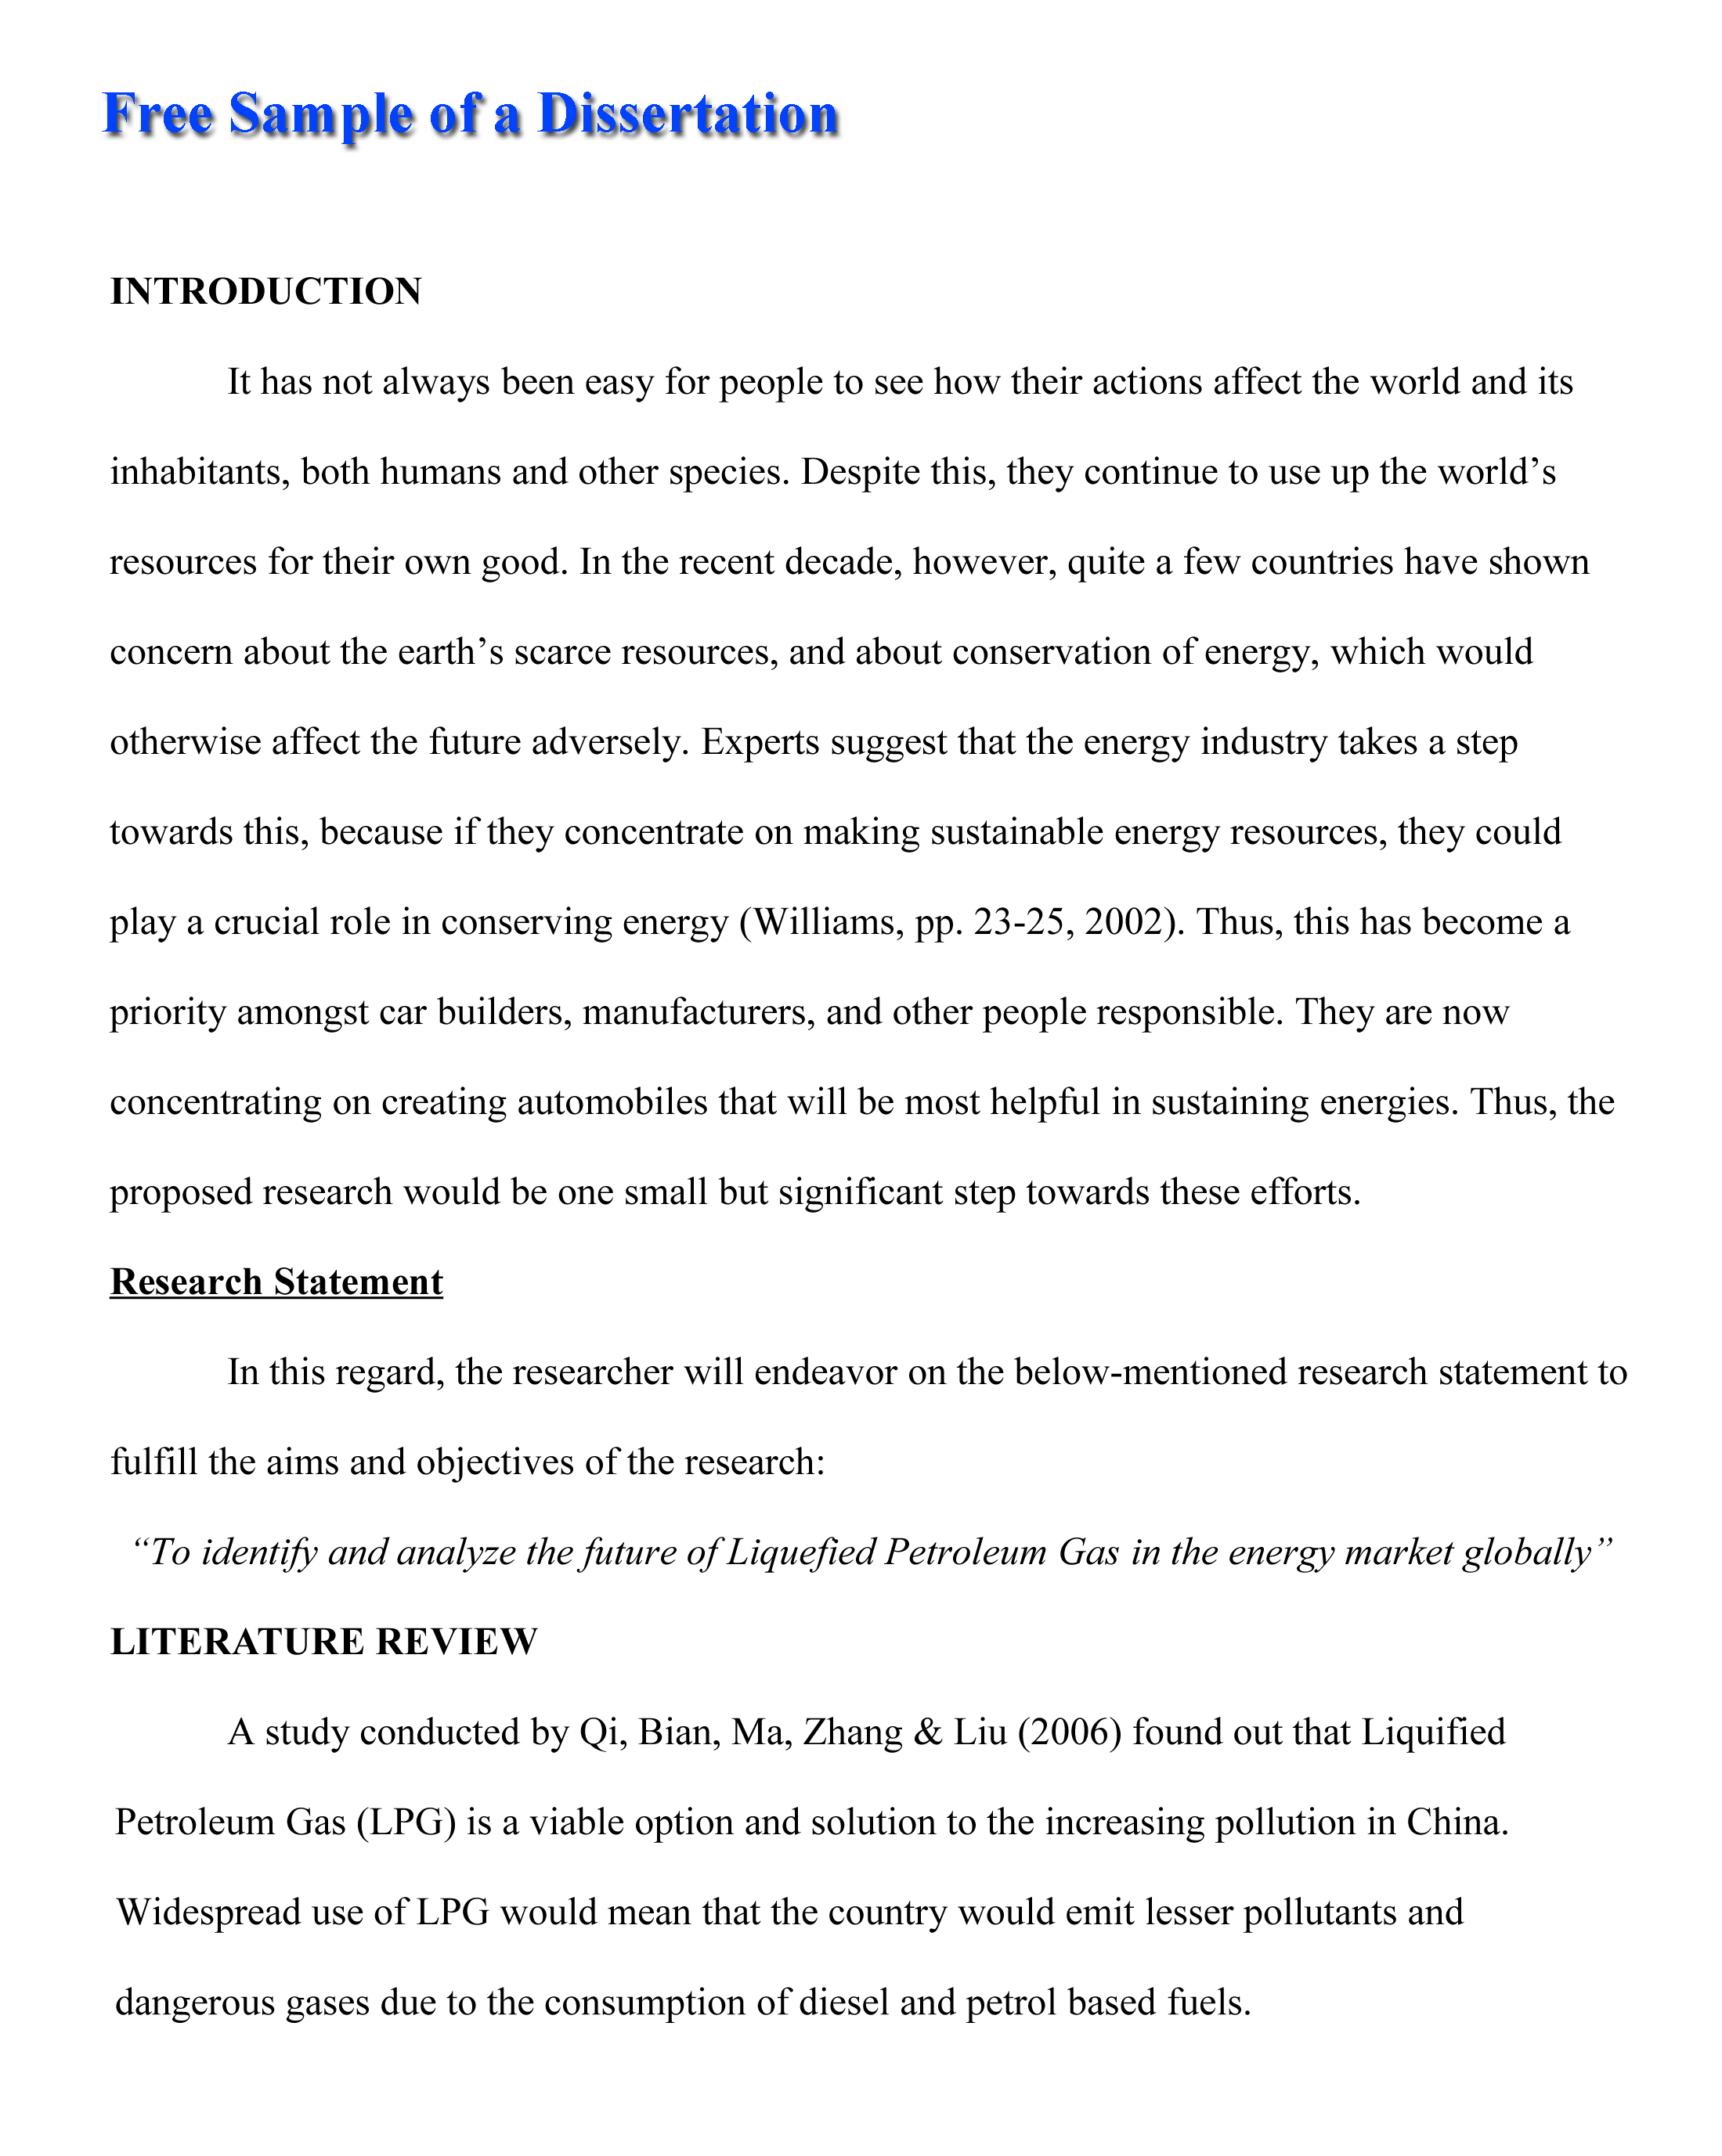 008 Dissertation Free Sample Argumentative Essay On School Uniforms Dreaded About Are Beneficial Should Be Banned Persuasive Mandatory Full